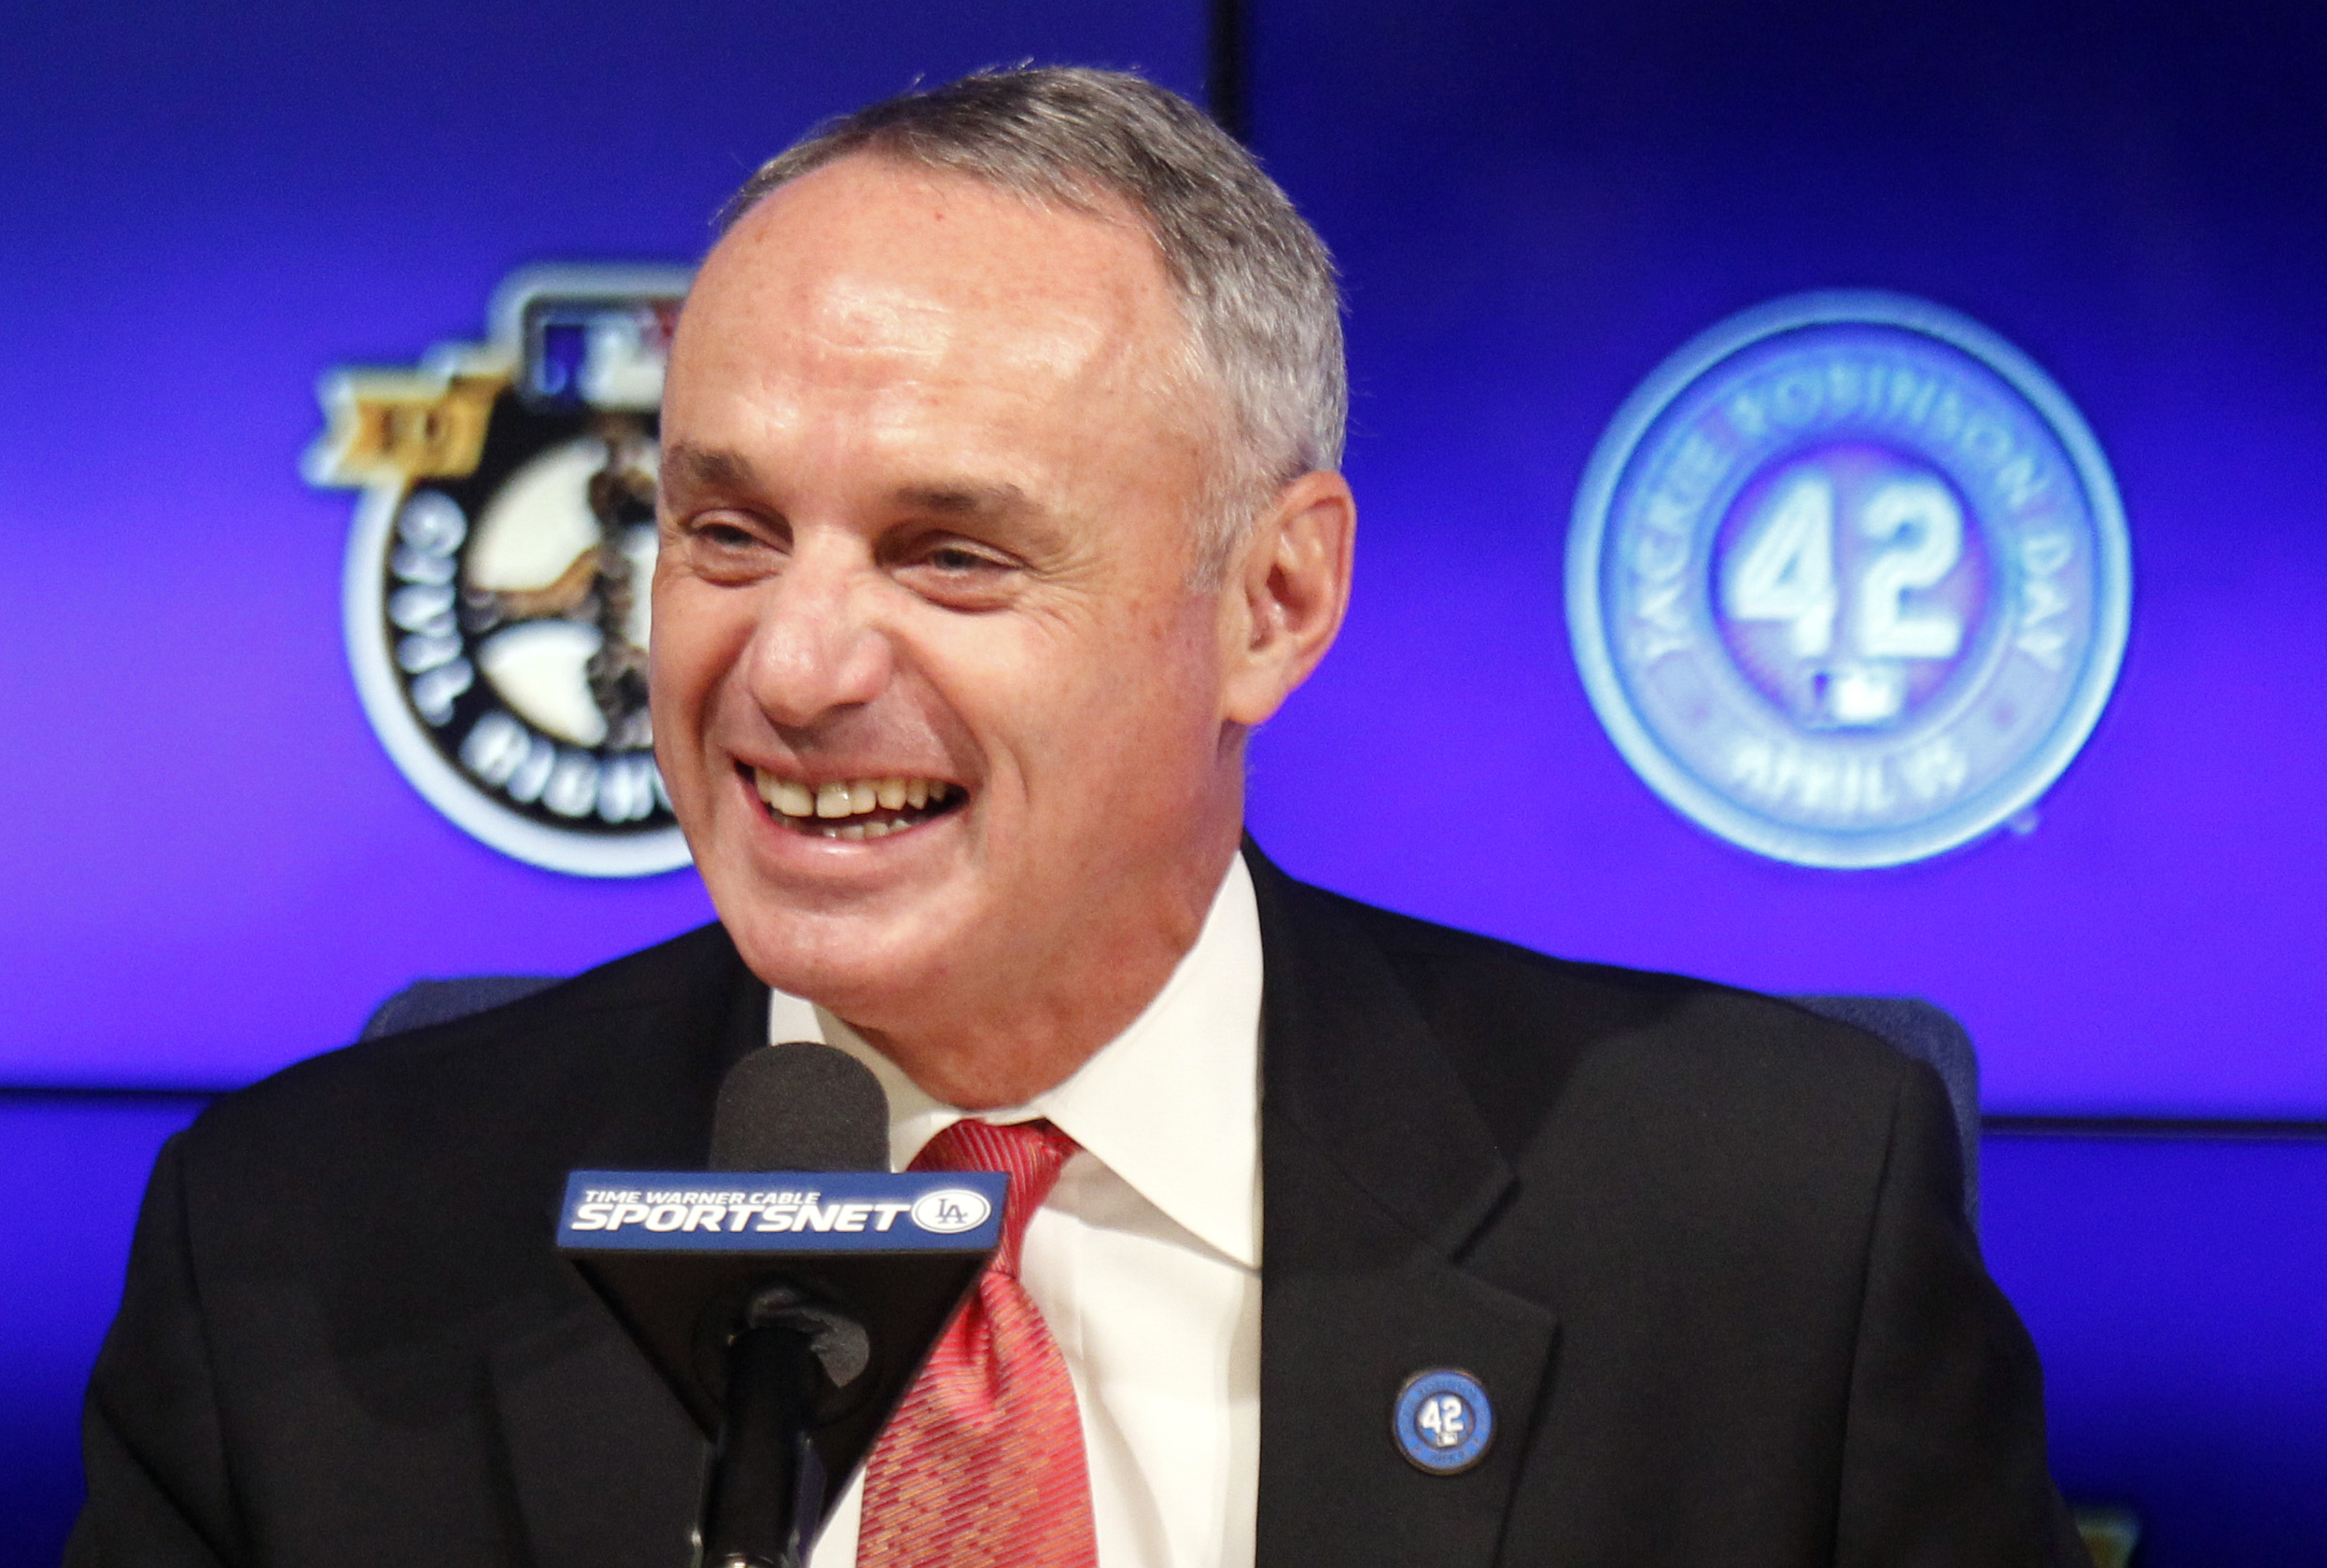 FILE - In this April 15, 2015, file photo, Major League Baseball Commissioner Rob Manfred talks during a news conference prior to a baseball game between the Los Angeles Dodgers and the Seattle Mariners on Jackie Robinson Day in Los Angeles. Manfred said